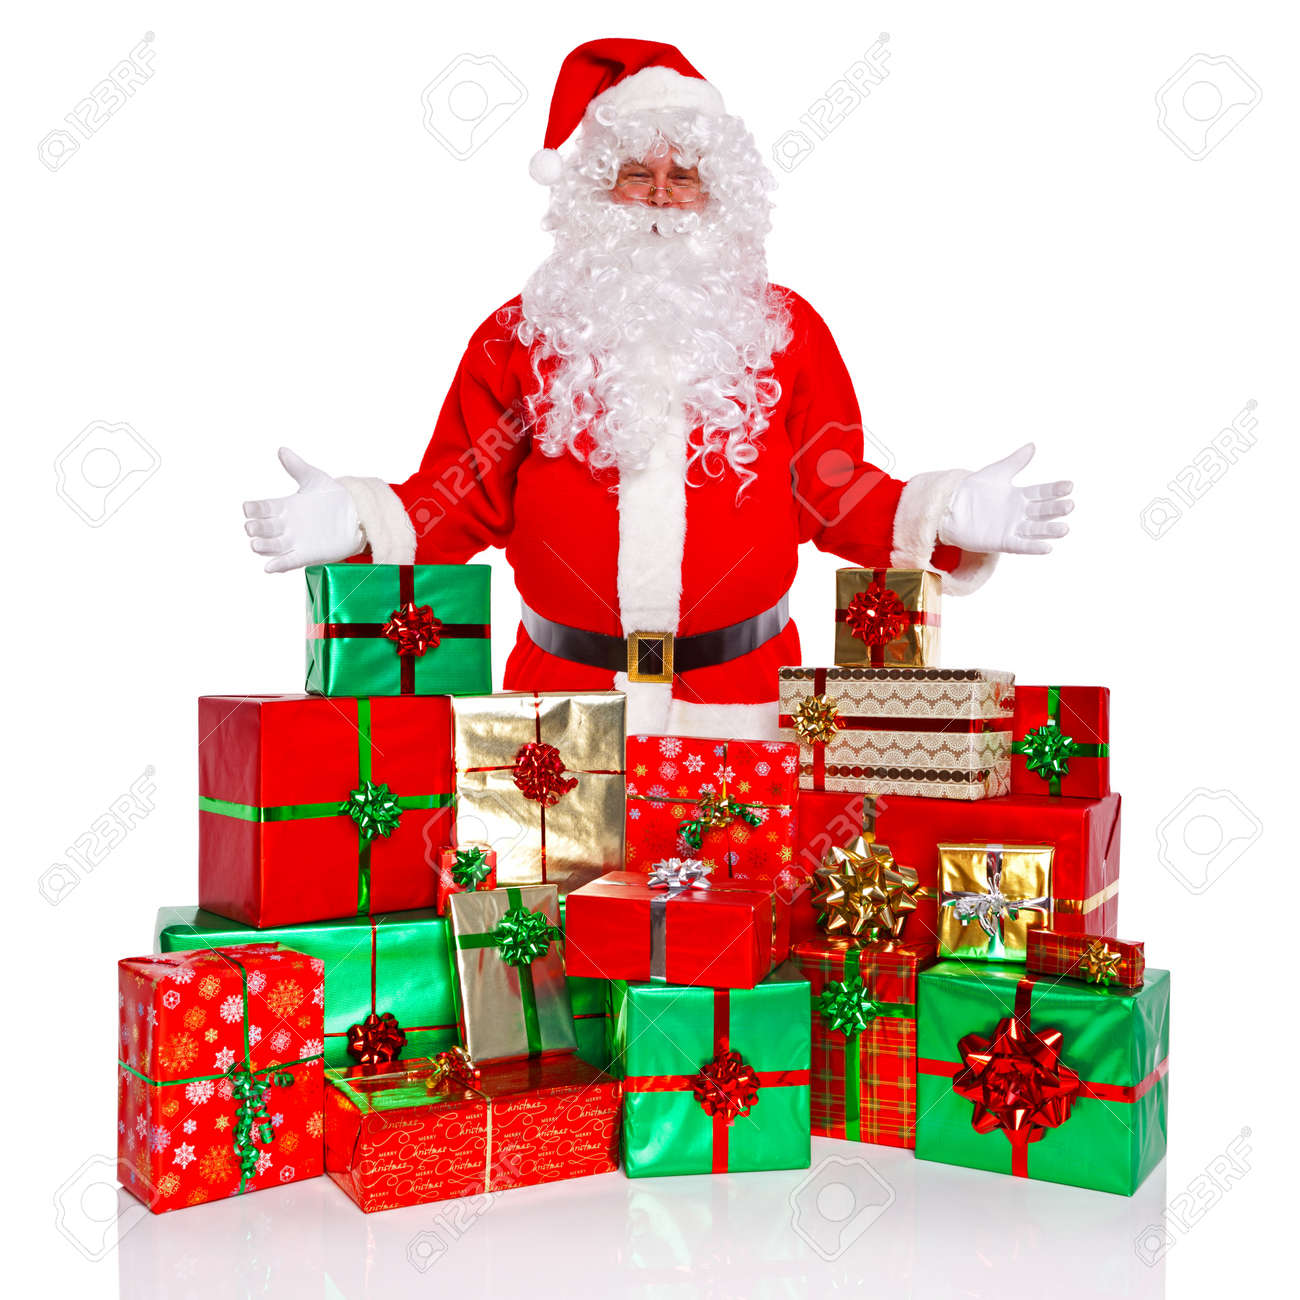 Santa claus or father christmas standing with a large collection santa claus or father christmas standing with a large collection of gift wrapped presents isolated negle Images